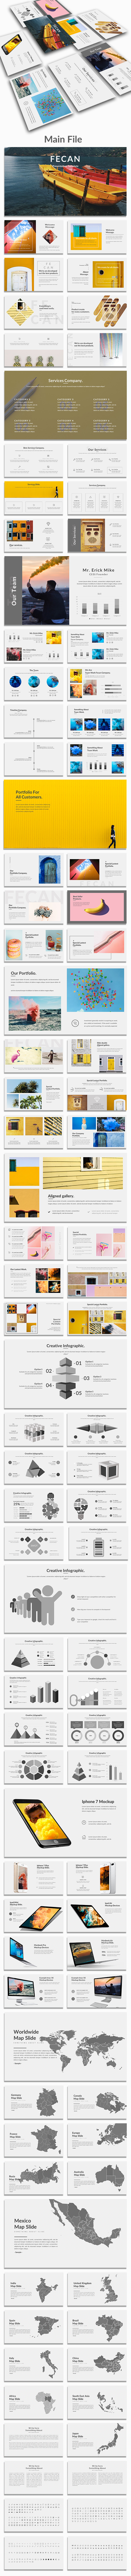 Fecan Minimal Google Slide Template - Google Slides Presentation Templates